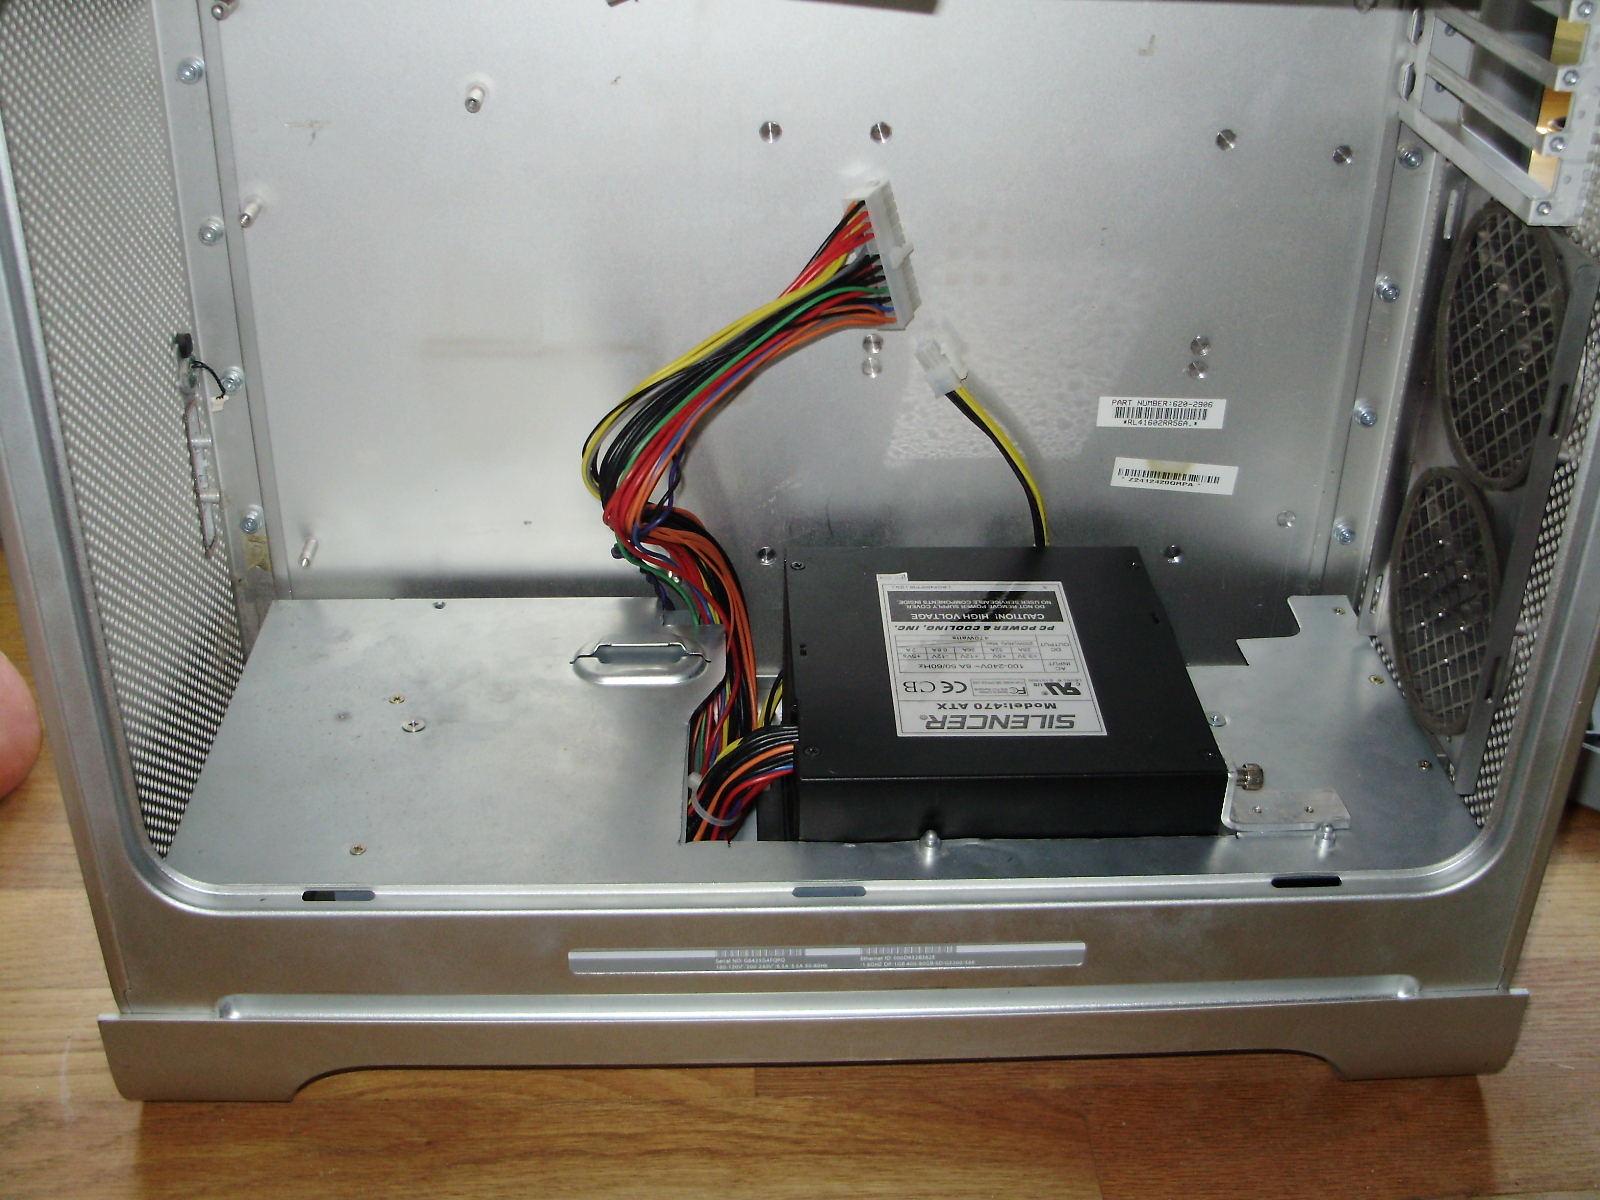 Cpu Fan Wiring Diagram Buildits How To Fit Your Pc In A Power Mac G5 Case